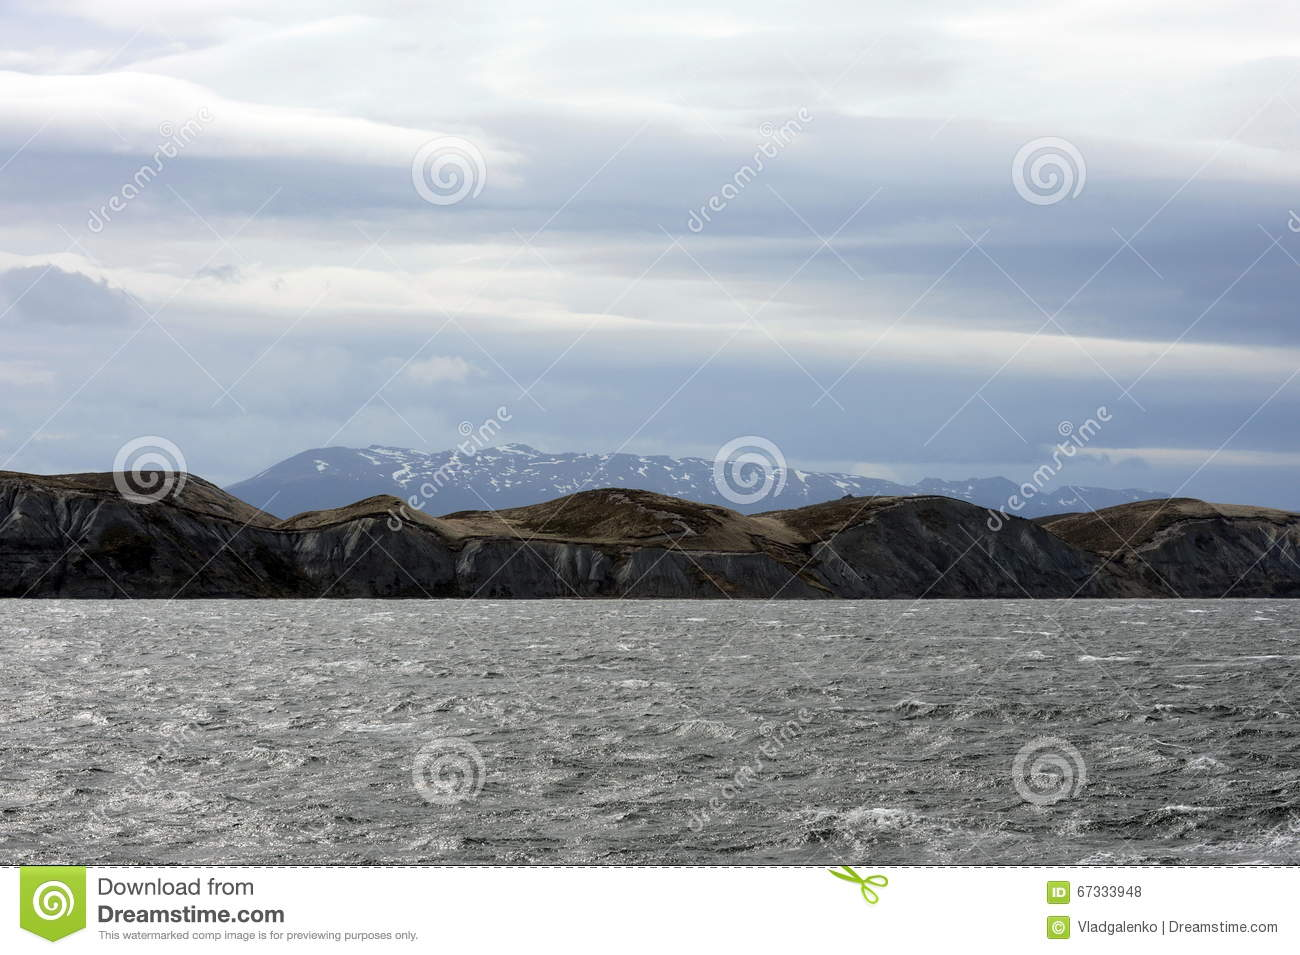 Download The Beagle Channel Separating The Main Island Of The Archipelago Of Tierra Del Fuego And Lying To The South Of The Island. Stock Photo - Image of 2014, ocean: 67333948